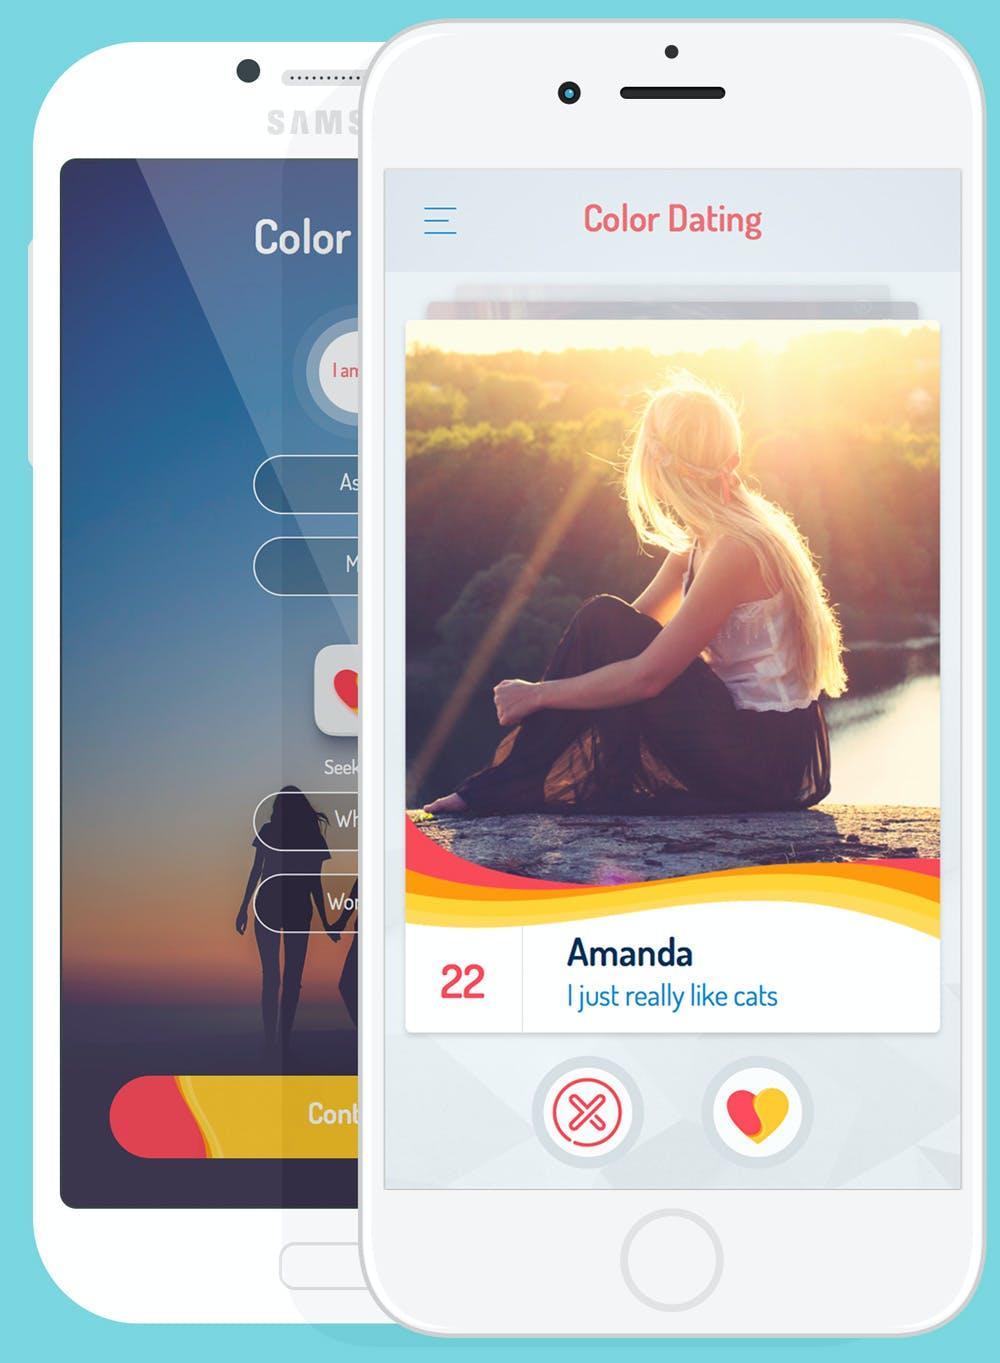 Color Dating Tinder For Interracial Dating Product Hunt